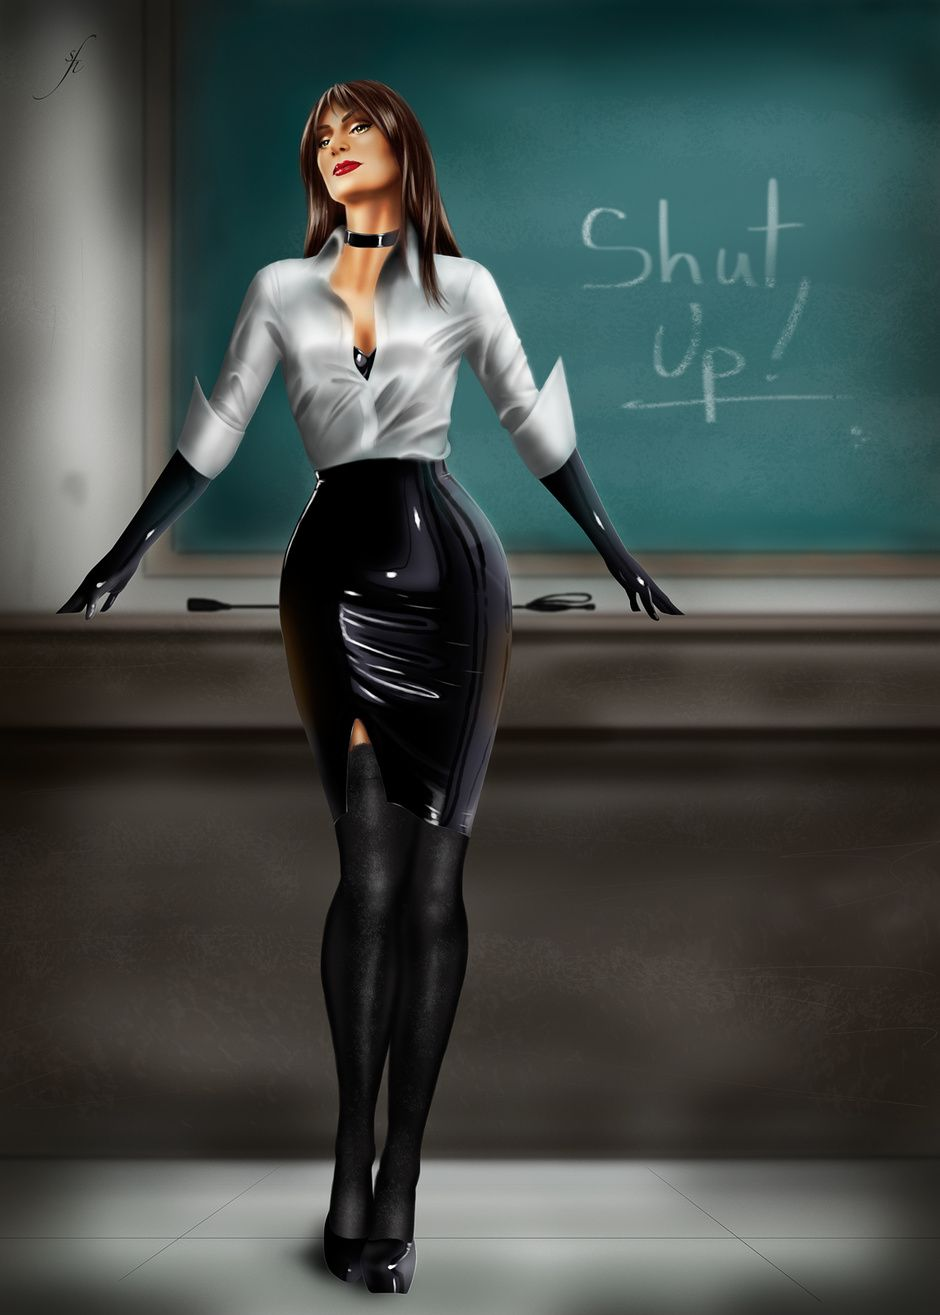 Cartoon Introvert Girl Wallpaper Bad Teacher By Stefano Sodini Portrait 2d Cgsociety